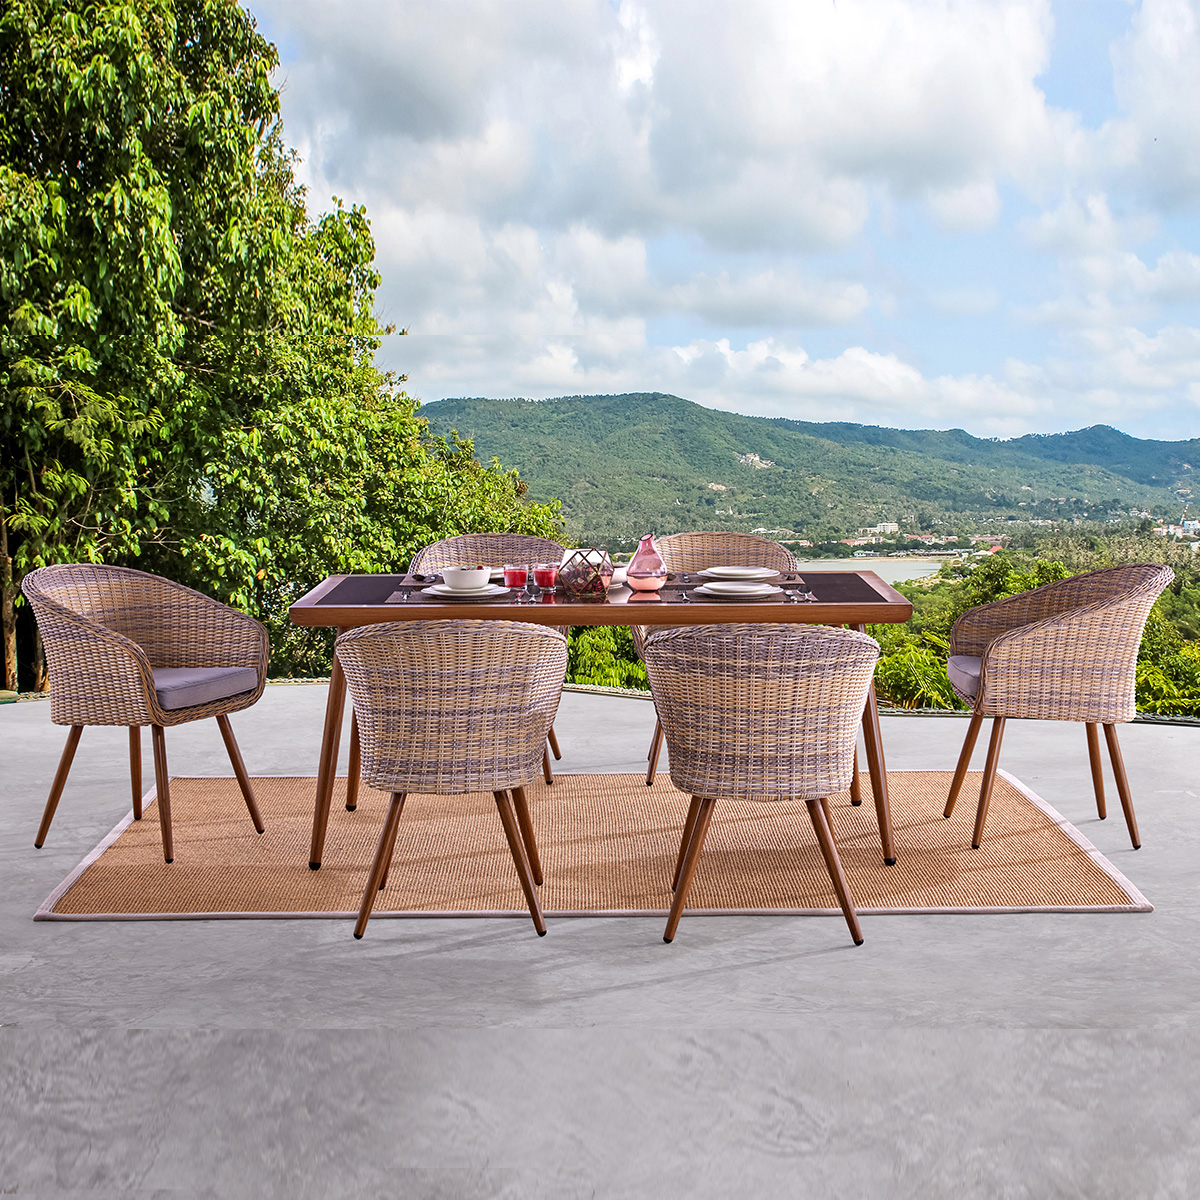 Martini 6 Seater Dining Intended For Outdoor Wicker Plastic Tear Porch Swings With Stand (View 22 of 25)